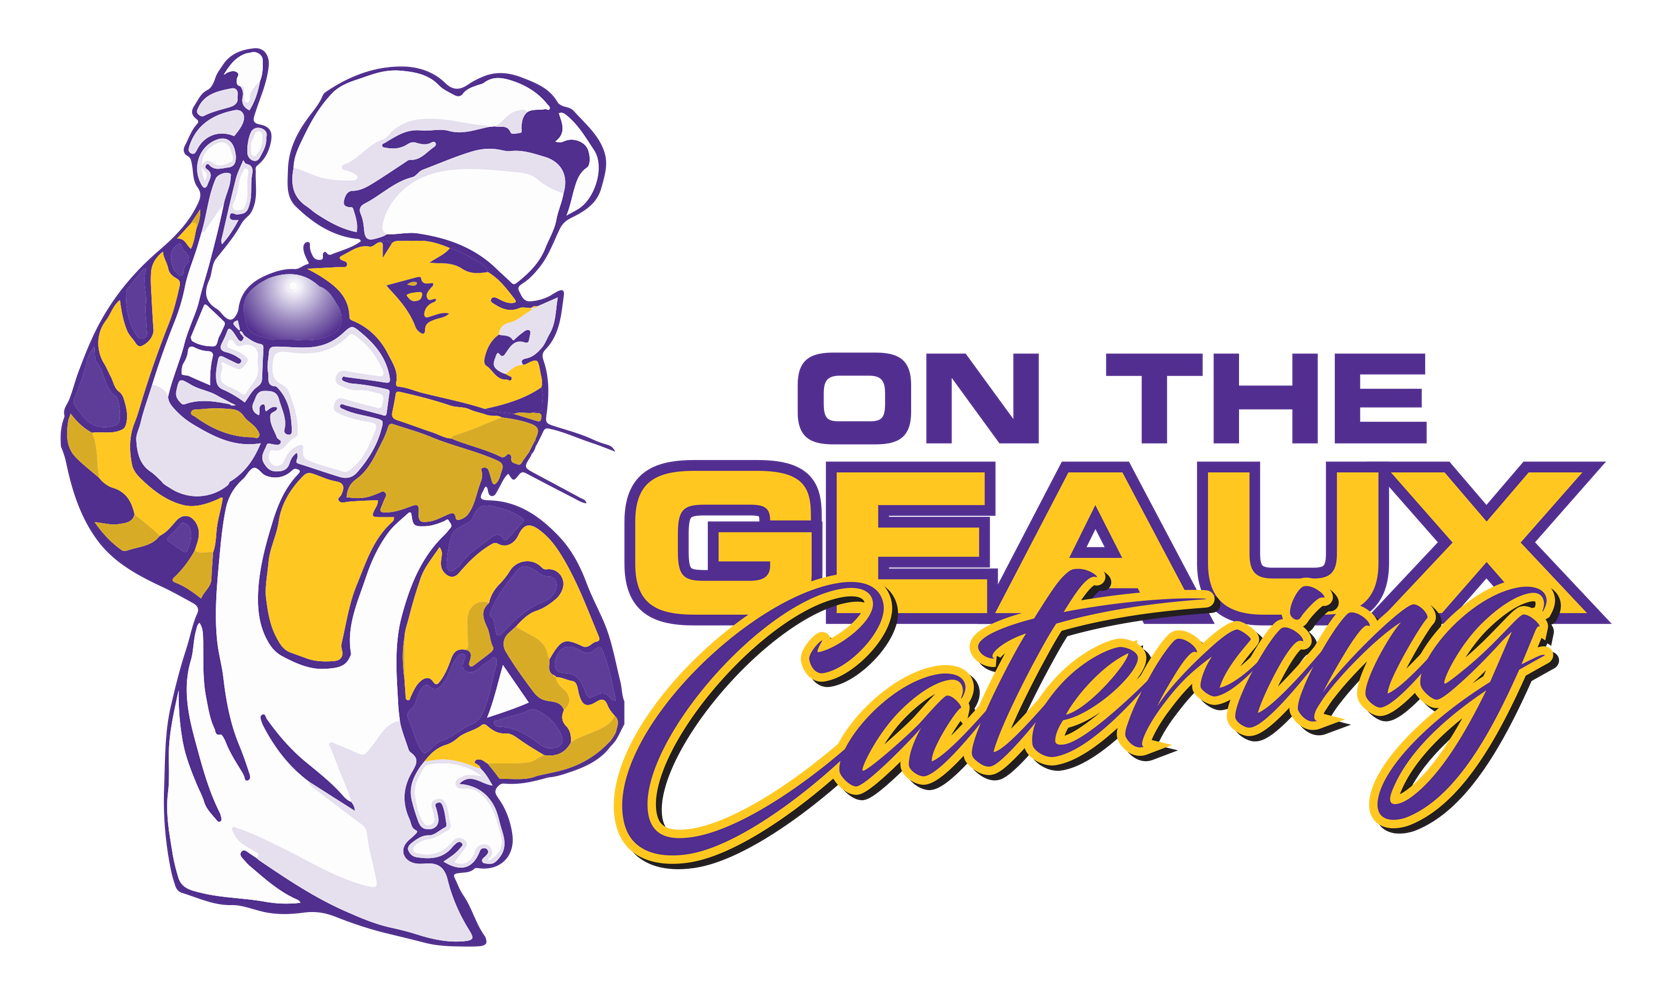 On The Geaux Catering